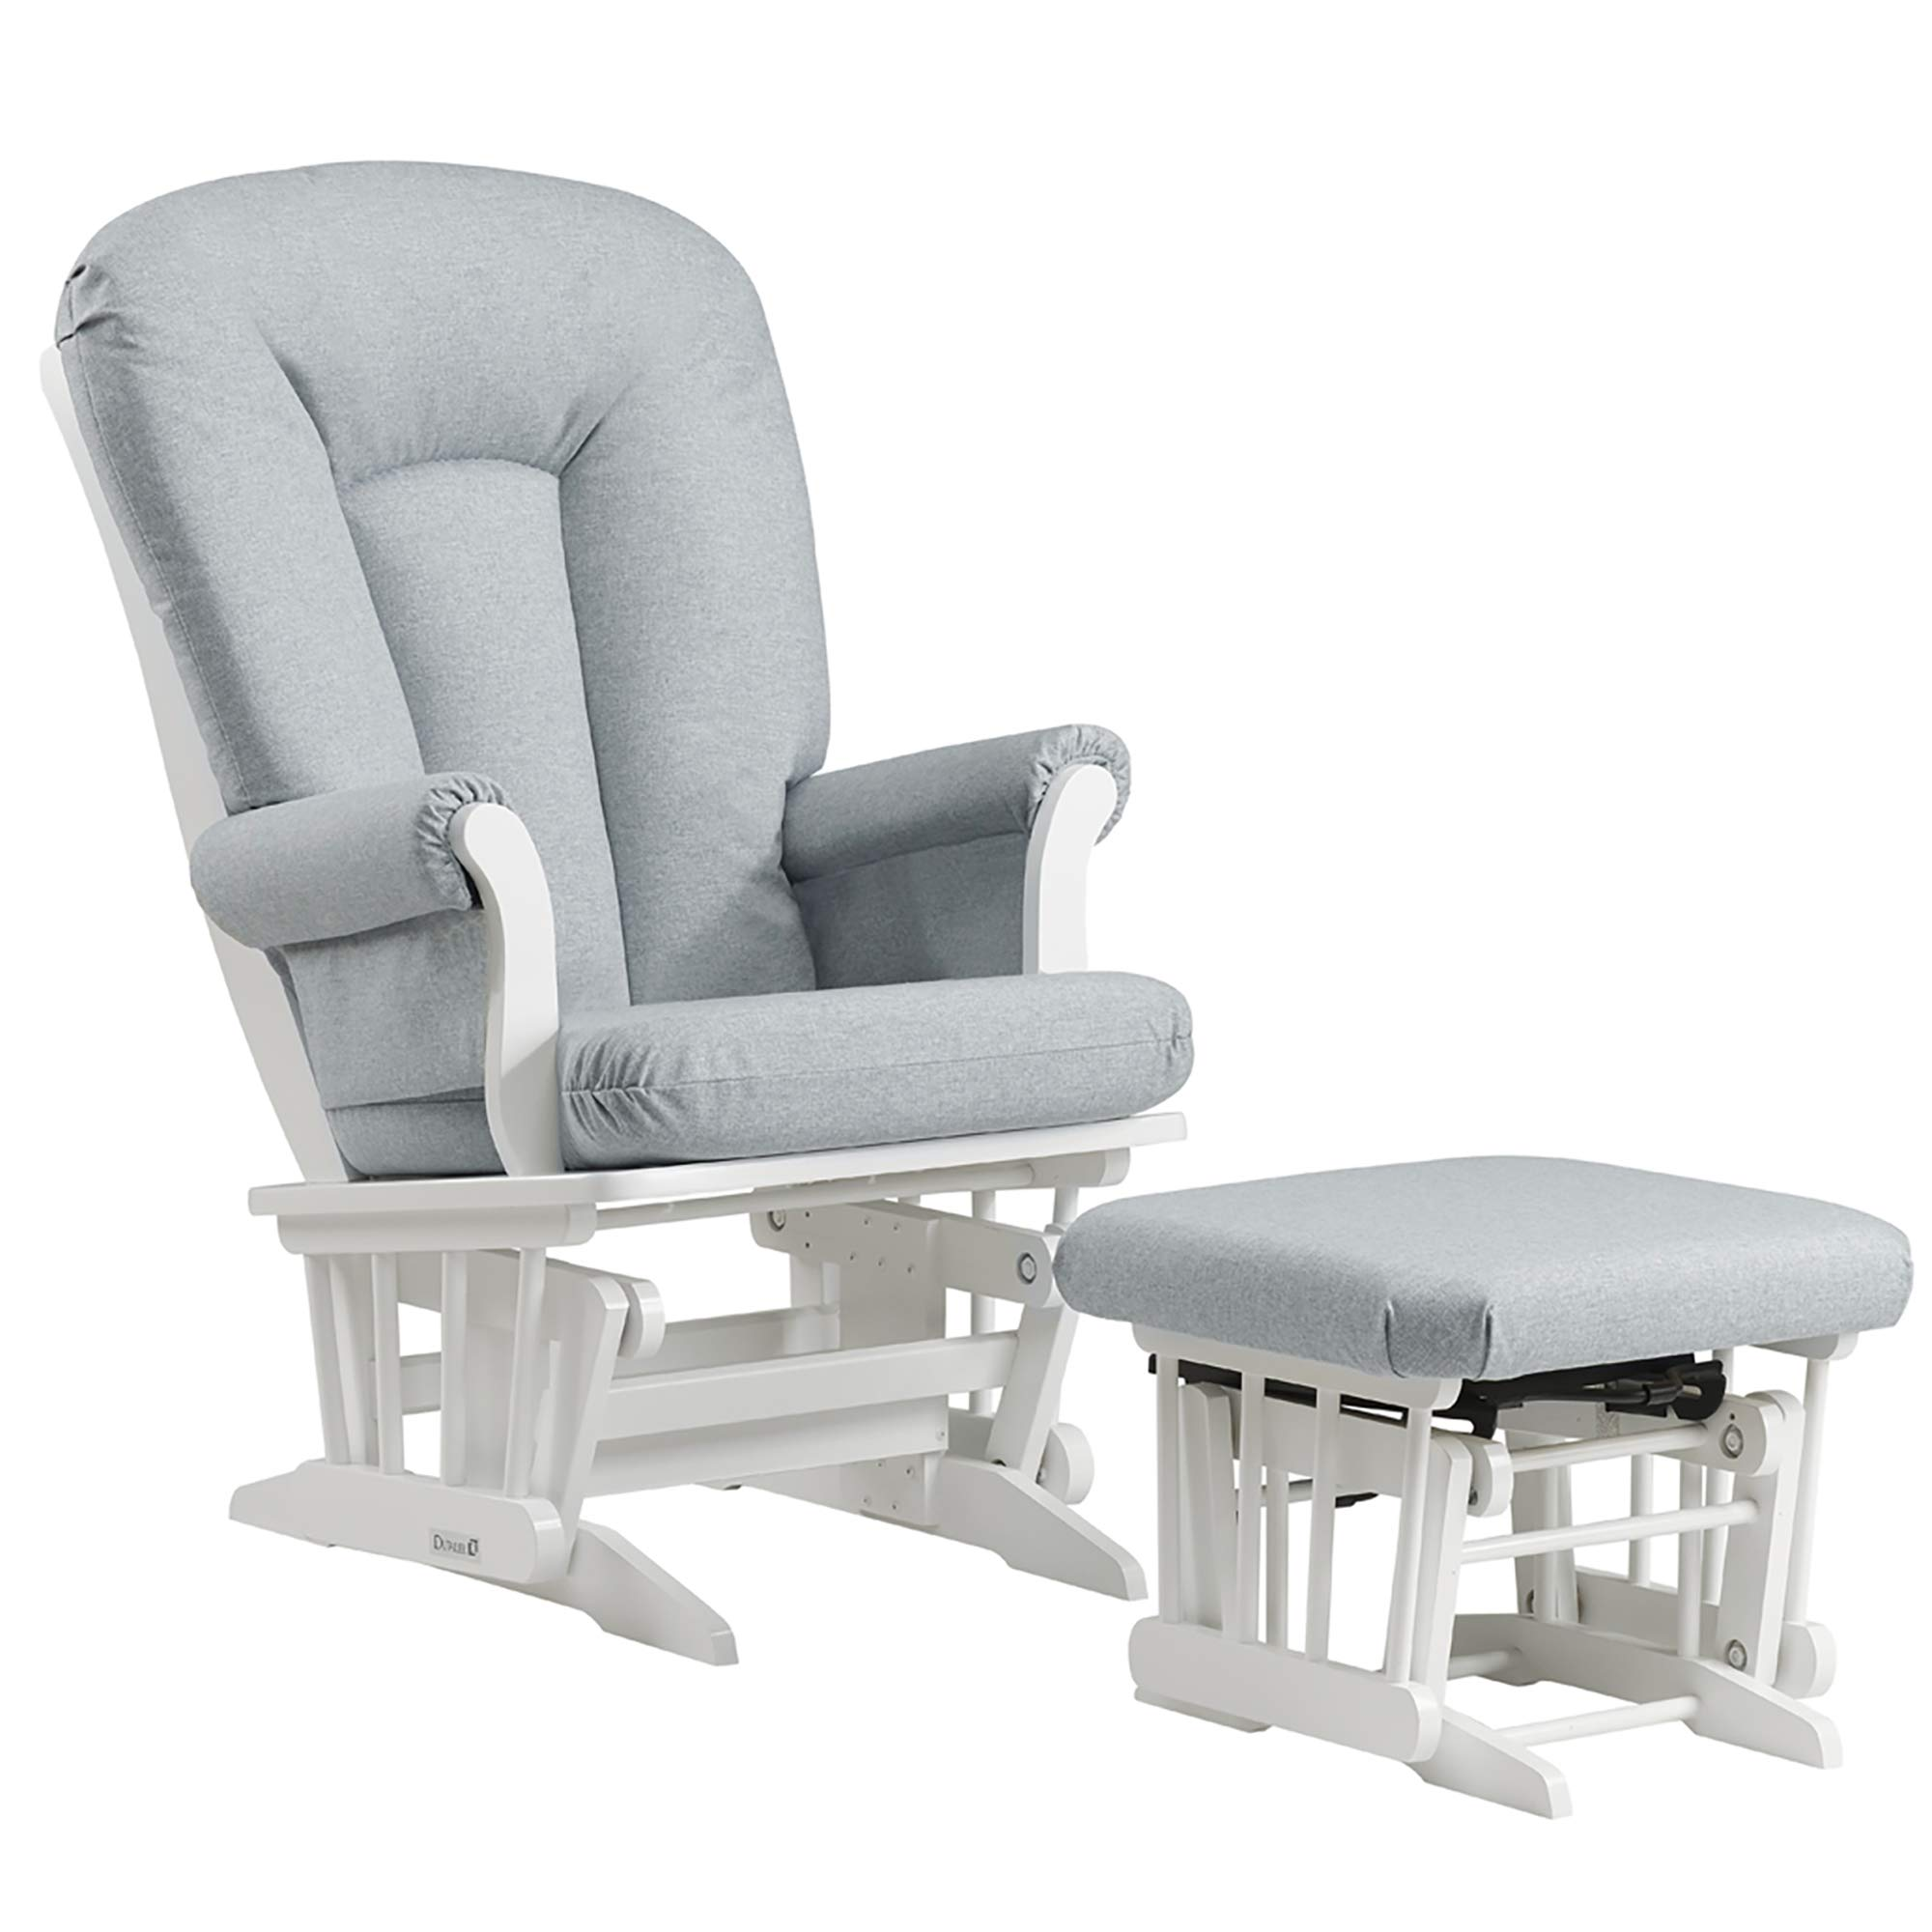 Dutailier Sleigh 0364 Glider Chair with Ottoman Included by Dutailier